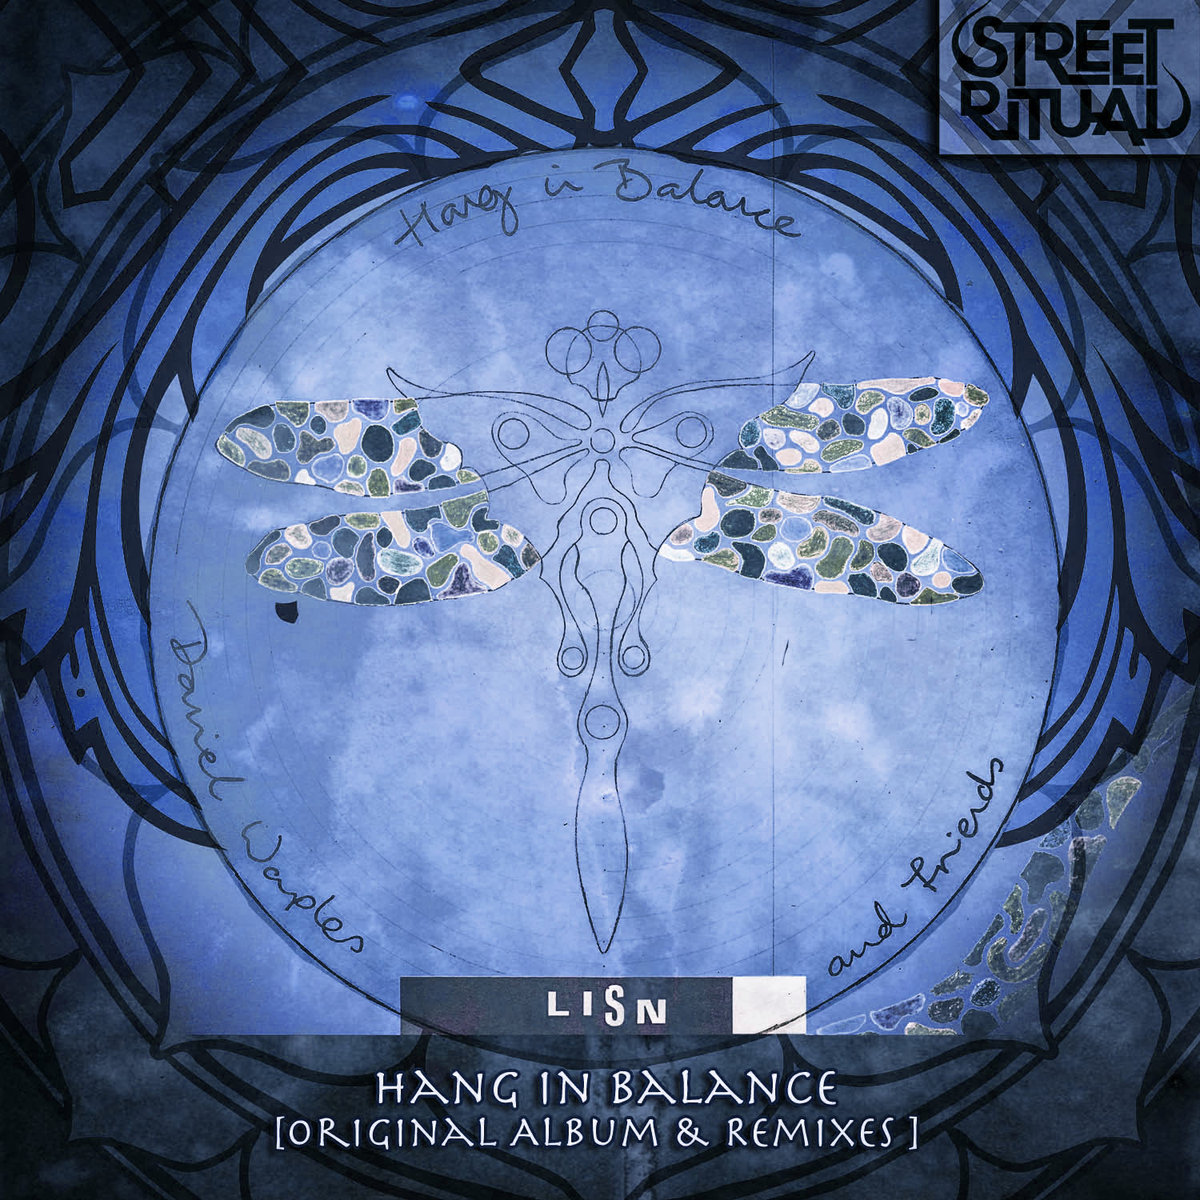 Hang in Balance - Einsof (Gridwork Remix) @ 'Lisn (Remixes & Originals)' album (bass, daniel waples)